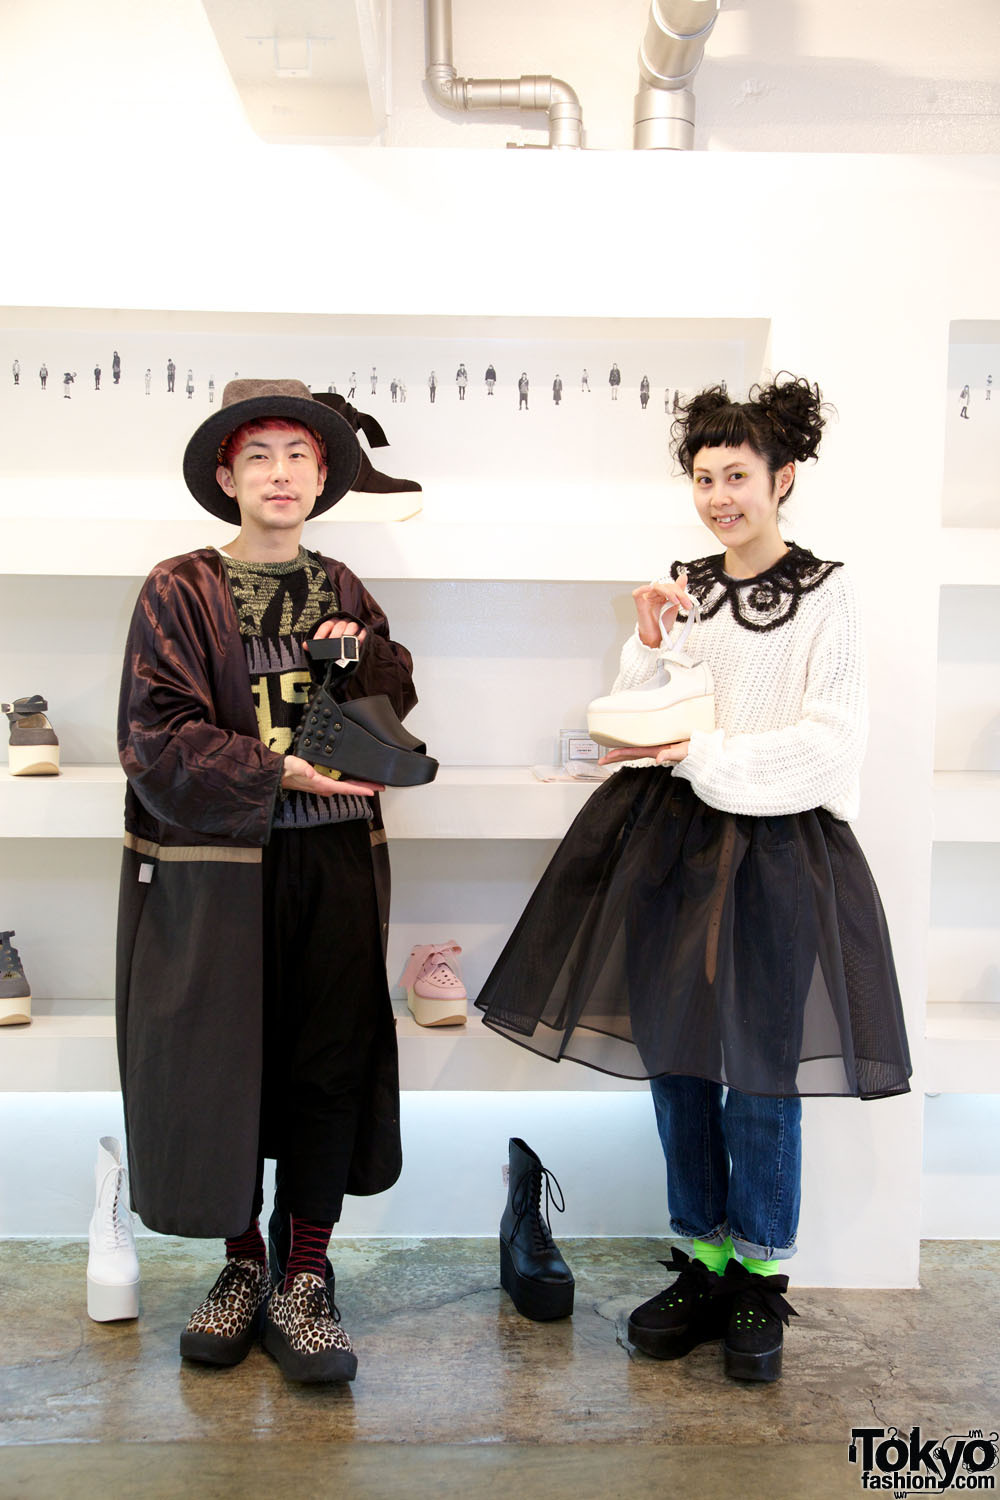 New Tokyo Bopper Harajuku shop profile with lots of cool pictures from Cat Street. Also, Bopper have a new English-language international web shop!